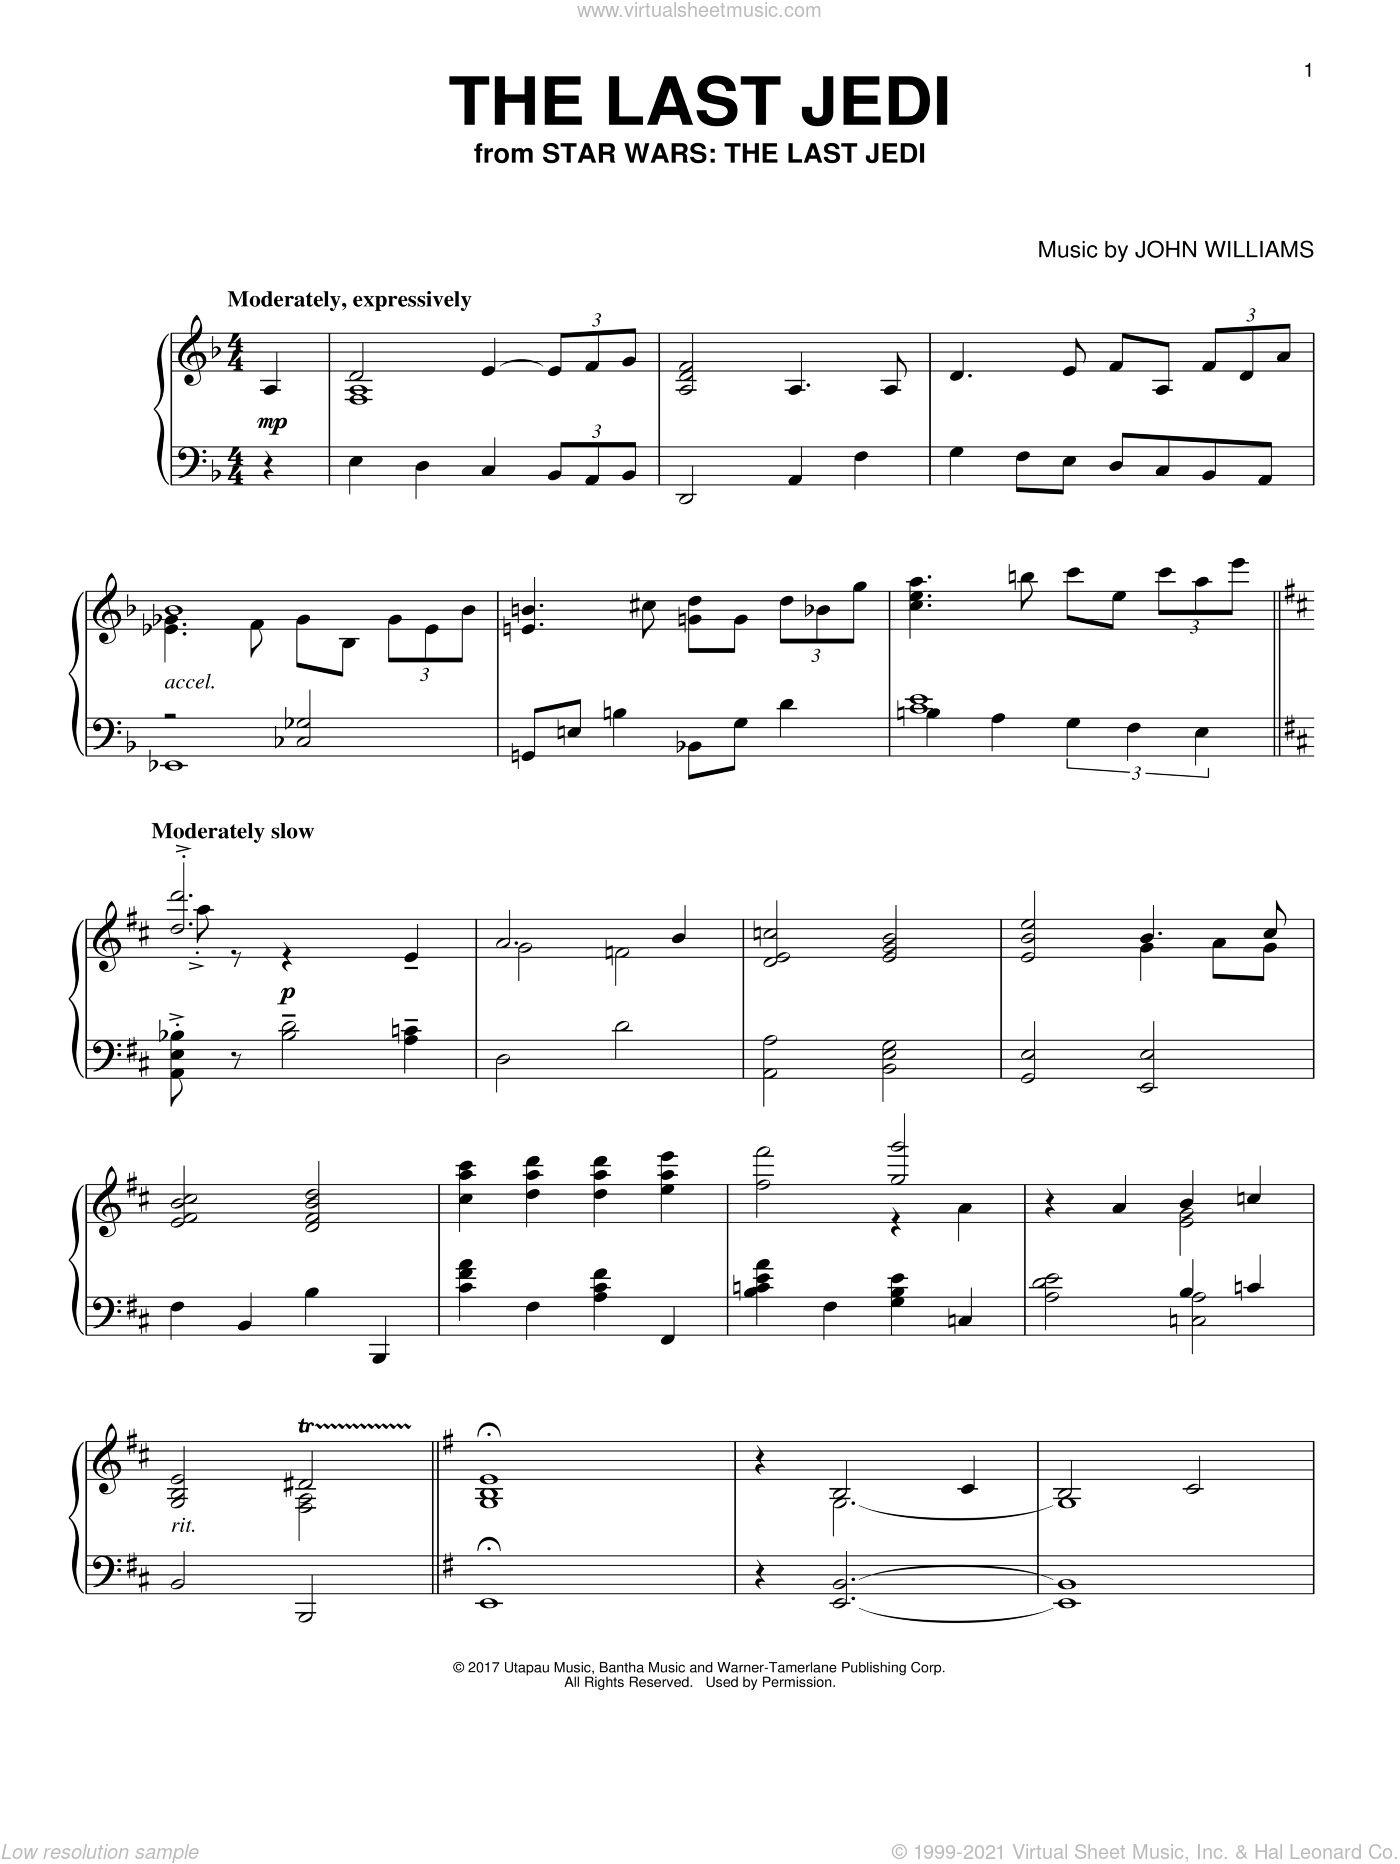 The Last Jedi sheet music for piano solo by John Williams, intermediate skill level